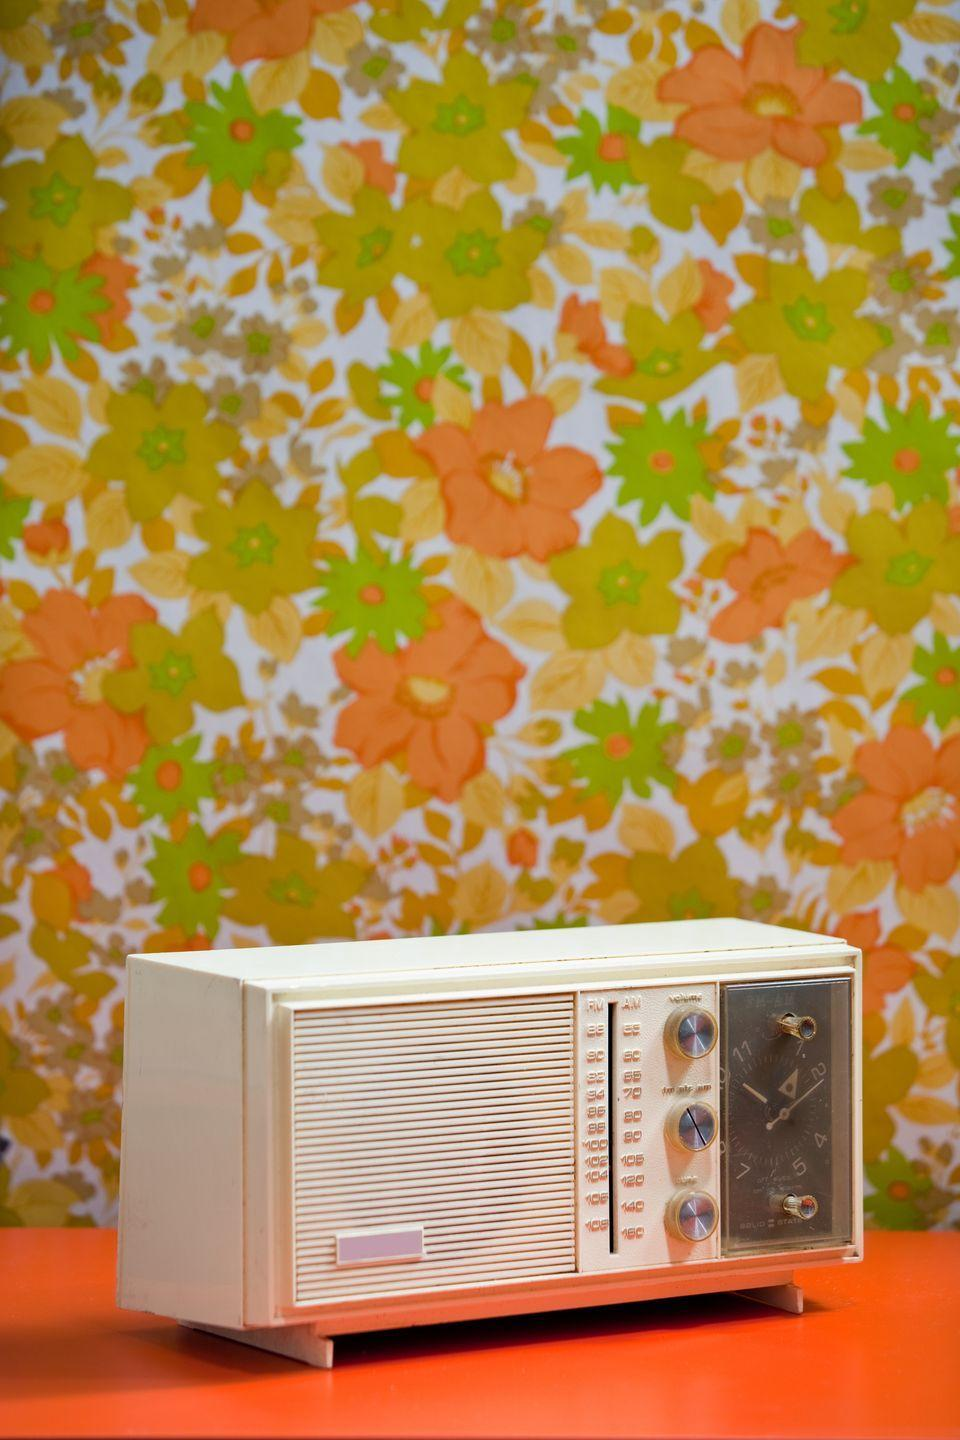 <p>Back before internet and satellite radio, there was only AM and FM, and folks in the 70s listened to it on devices made just for that. </p>